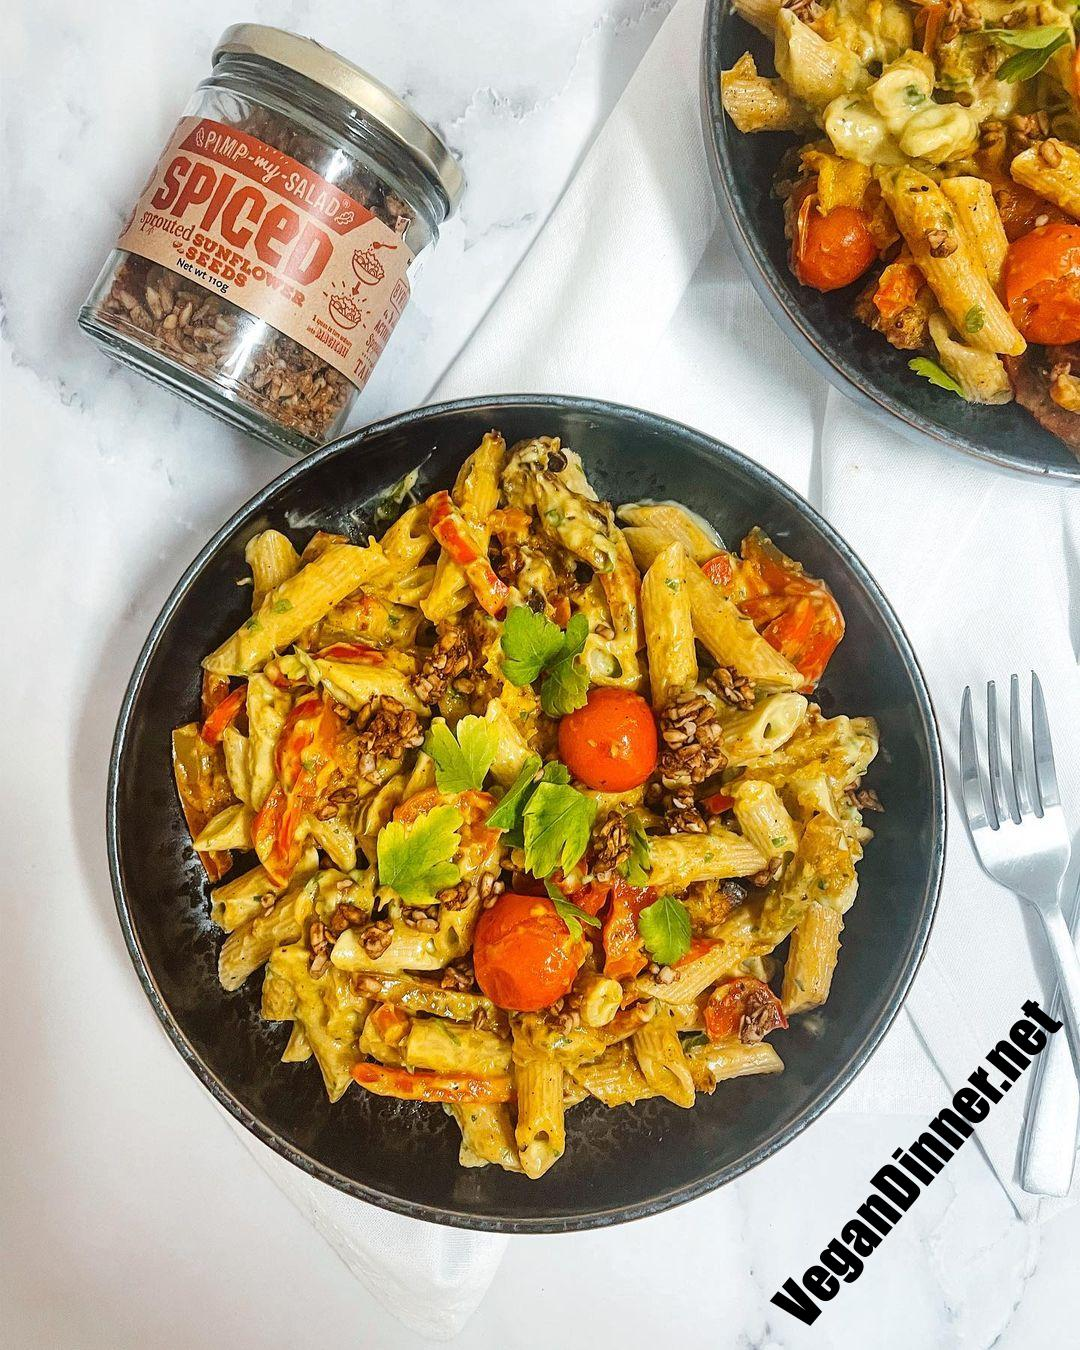 penne with avocado cream and spiced sunflower seeds multip img bdaecc